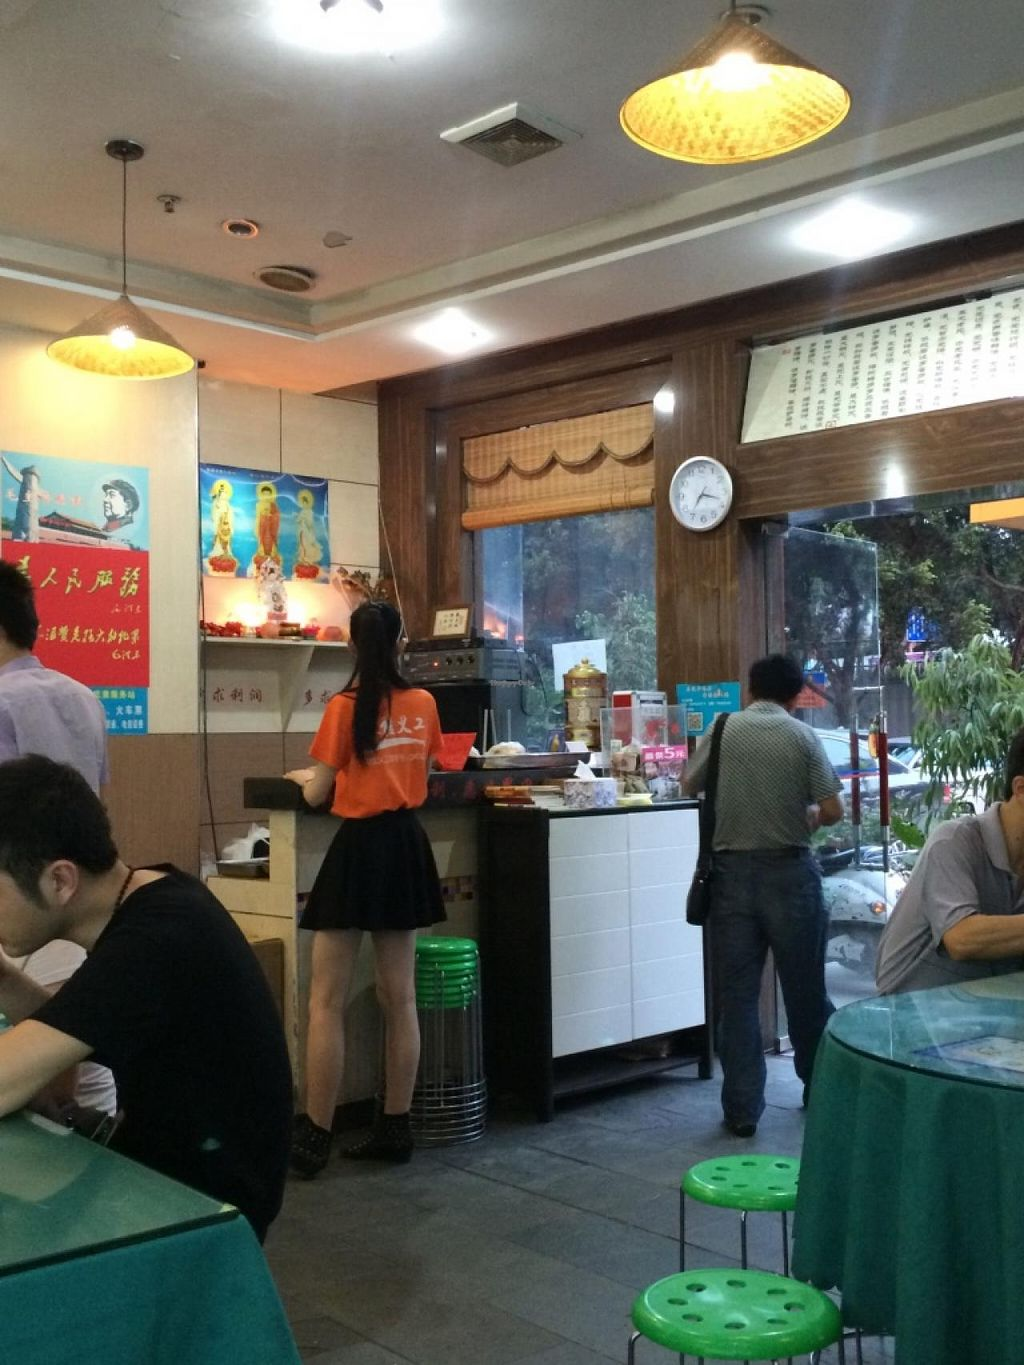 """Photo of Zao Chi Su Ba - Earlier Vegetarian  by <a href=""""/members/profile/AustinJardinera"""">AustinJardinera</a> <br/>The front desk. The box is where you put your 5 yuan. Less than a dollar, all you care to eat <br/> May 21, 2015  - <a href='/contact/abuse/image/52875/102938'>Report</a>"""